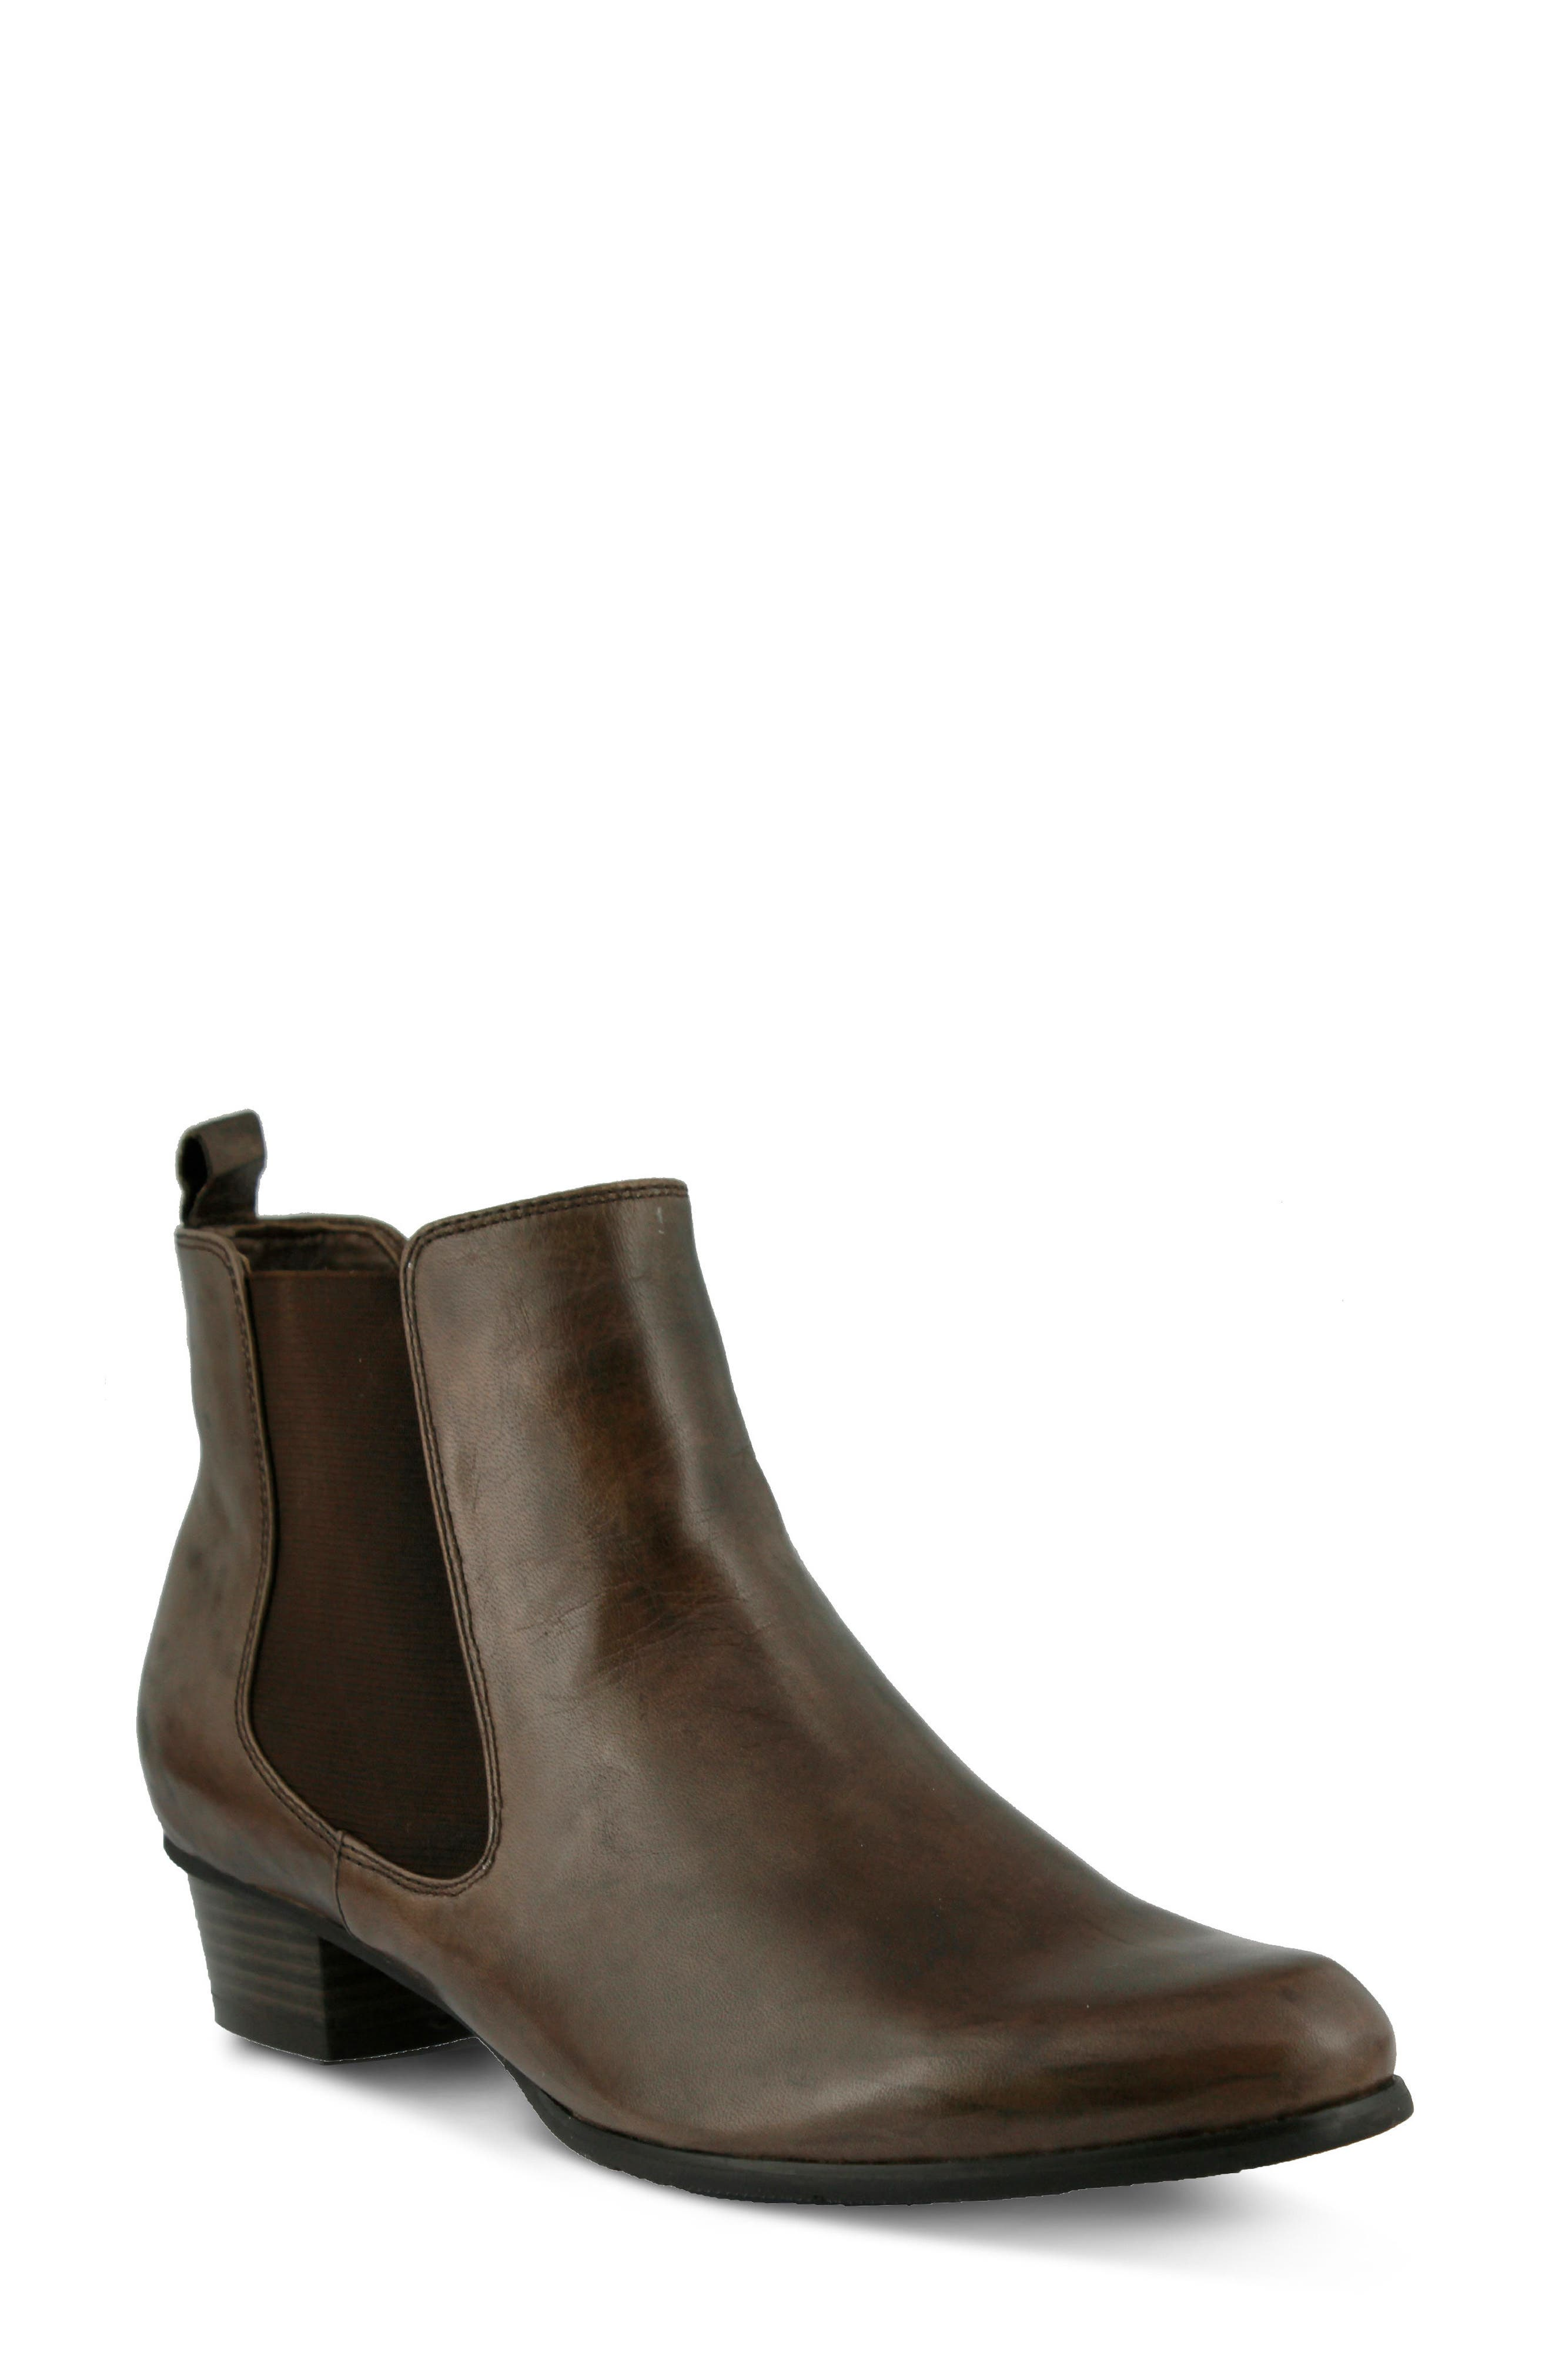 Spring Step Lithium Chelsea Boot - Beige